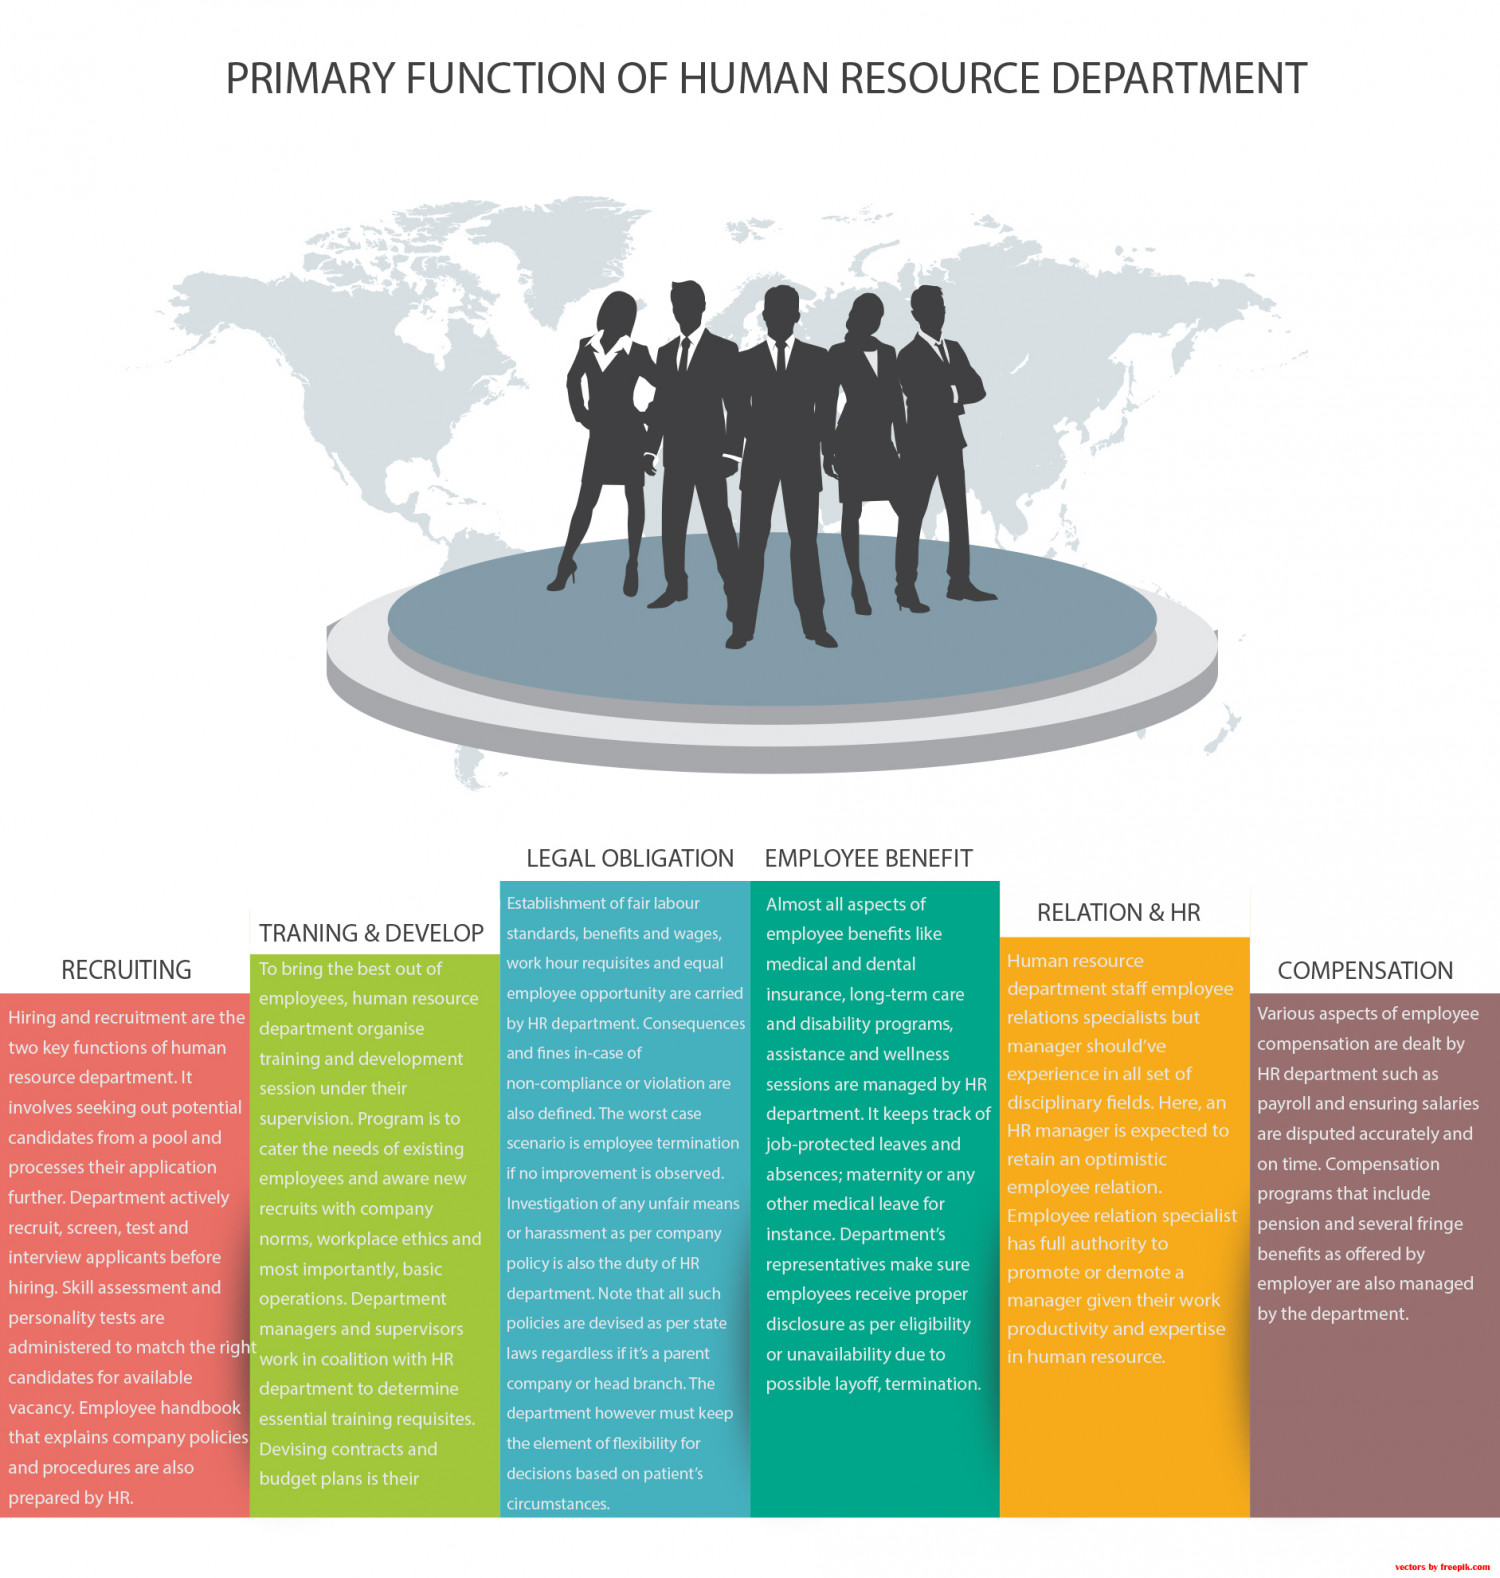 Primary Functions Of Human Resource Department Visual Ly